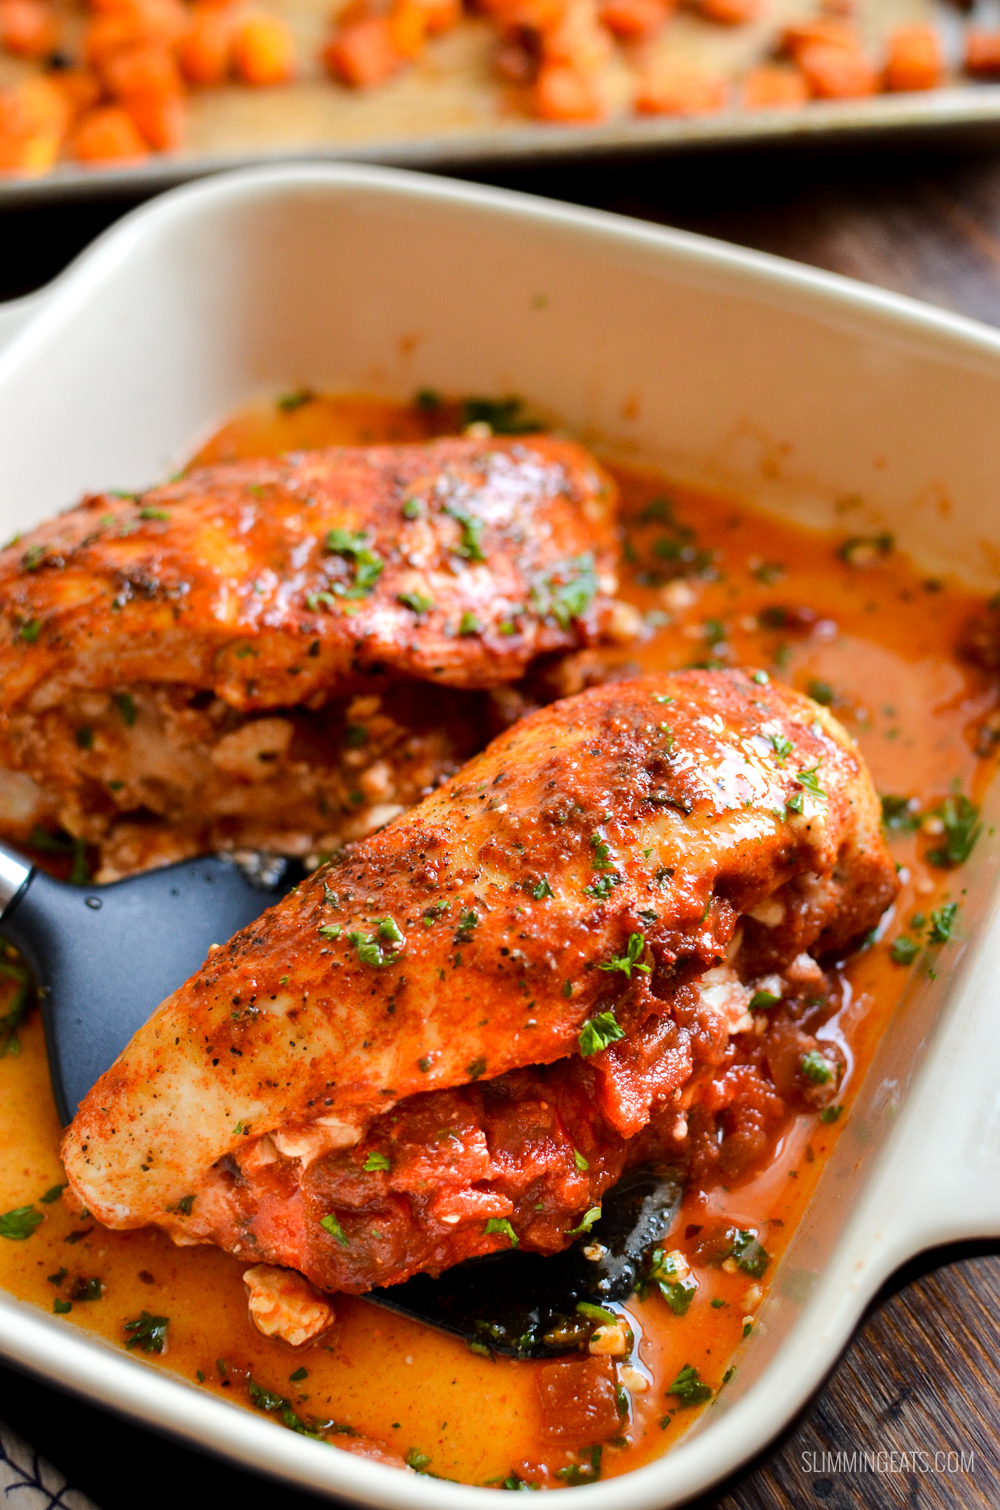 spicy chicken stuffed with feta cheese and salsa in oven proof dish